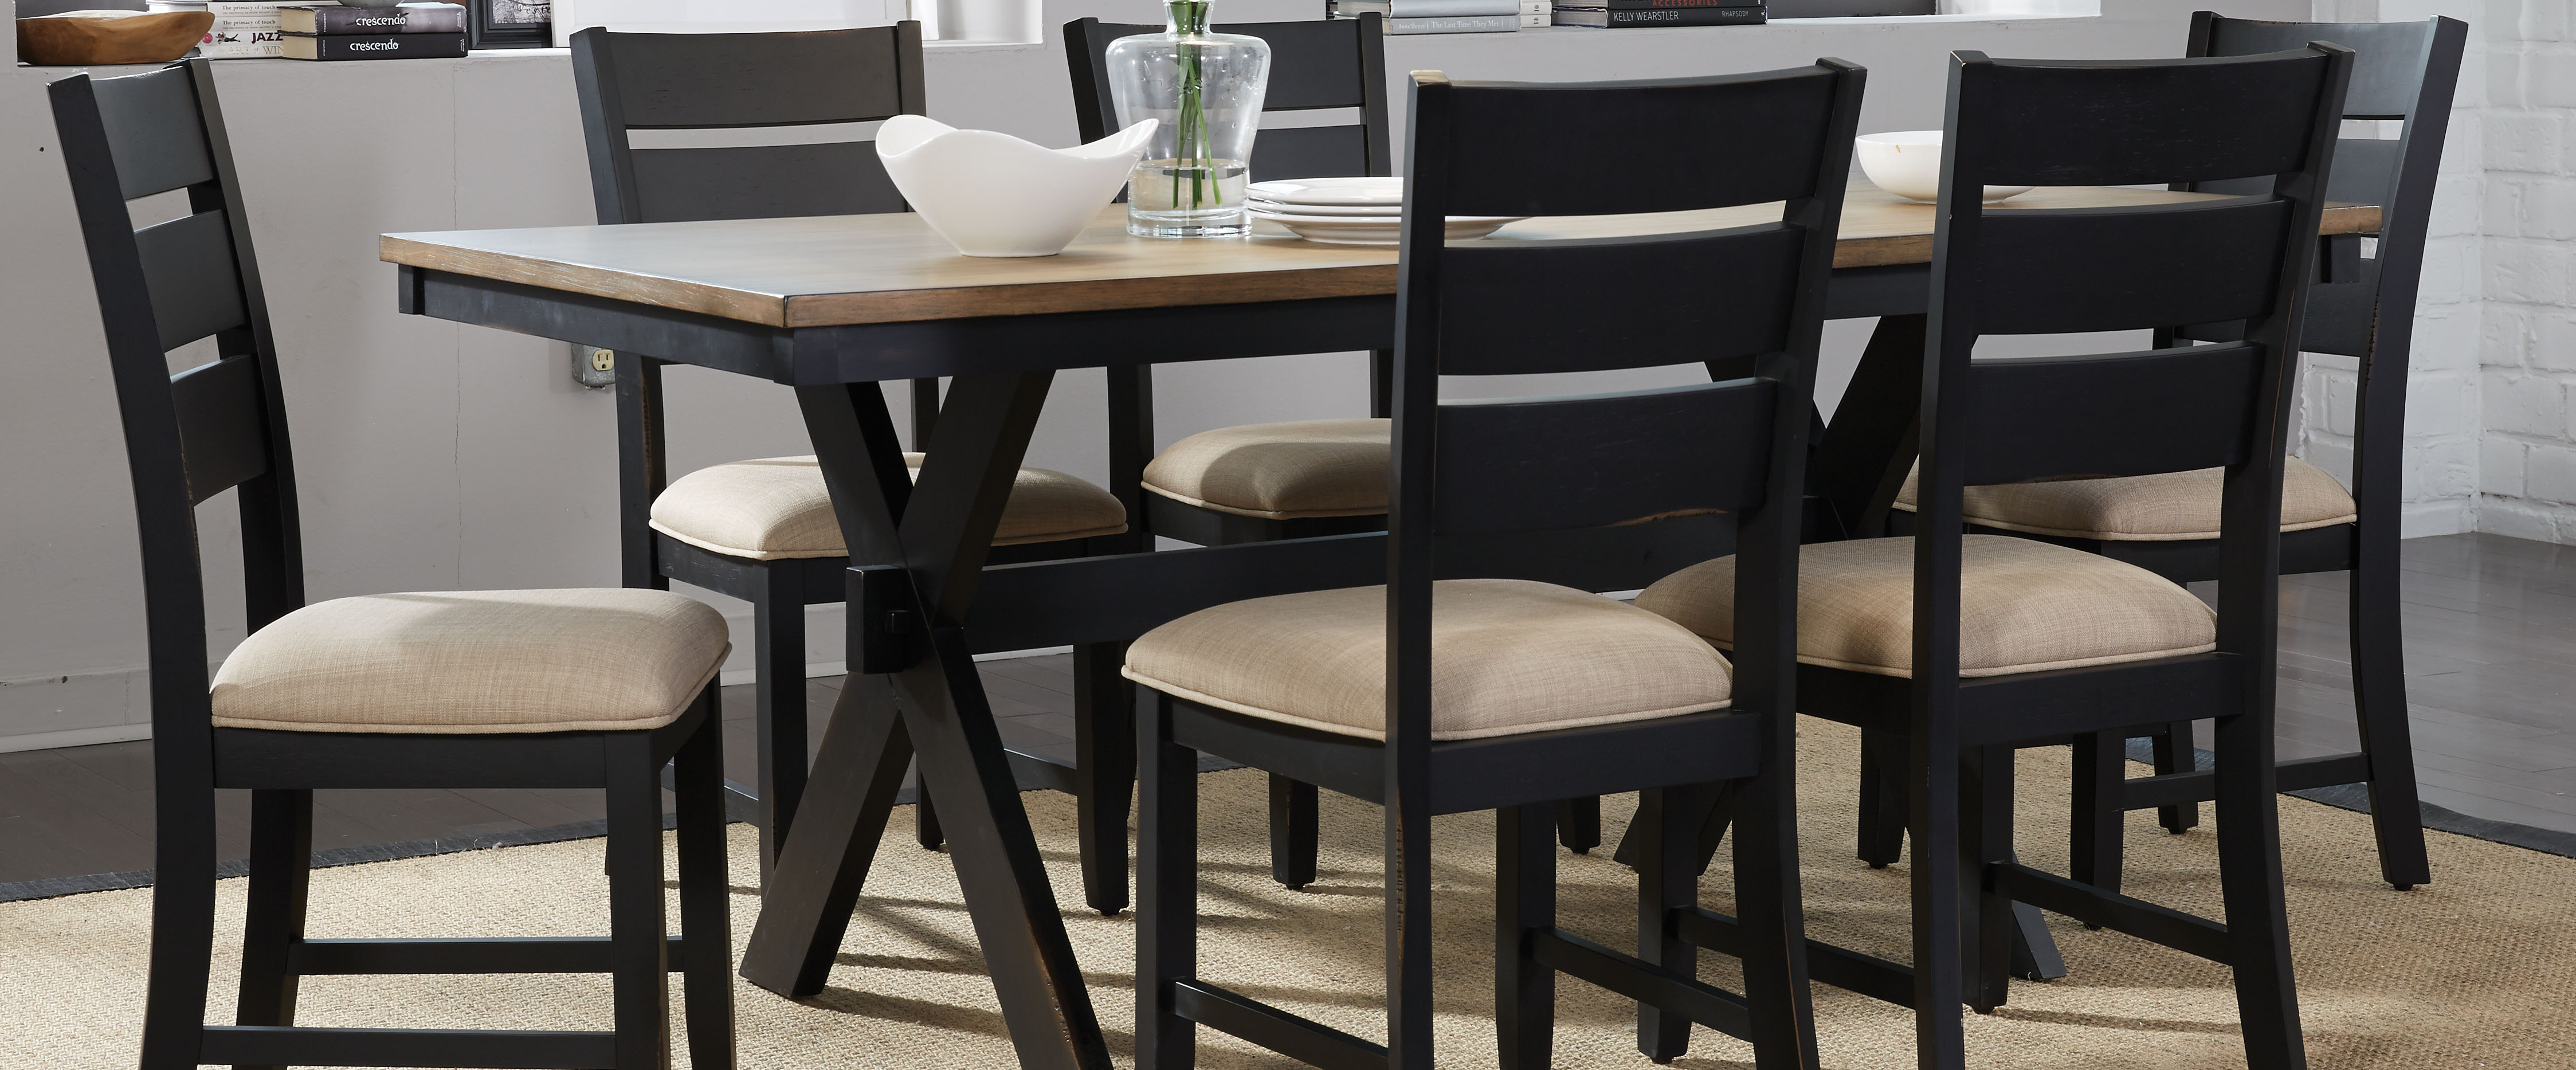 Cincinnati 3 Piece Dining Sets Pertaining To Most Recent Dinette Sets – Sims Furniture Company (View 8 of 20)